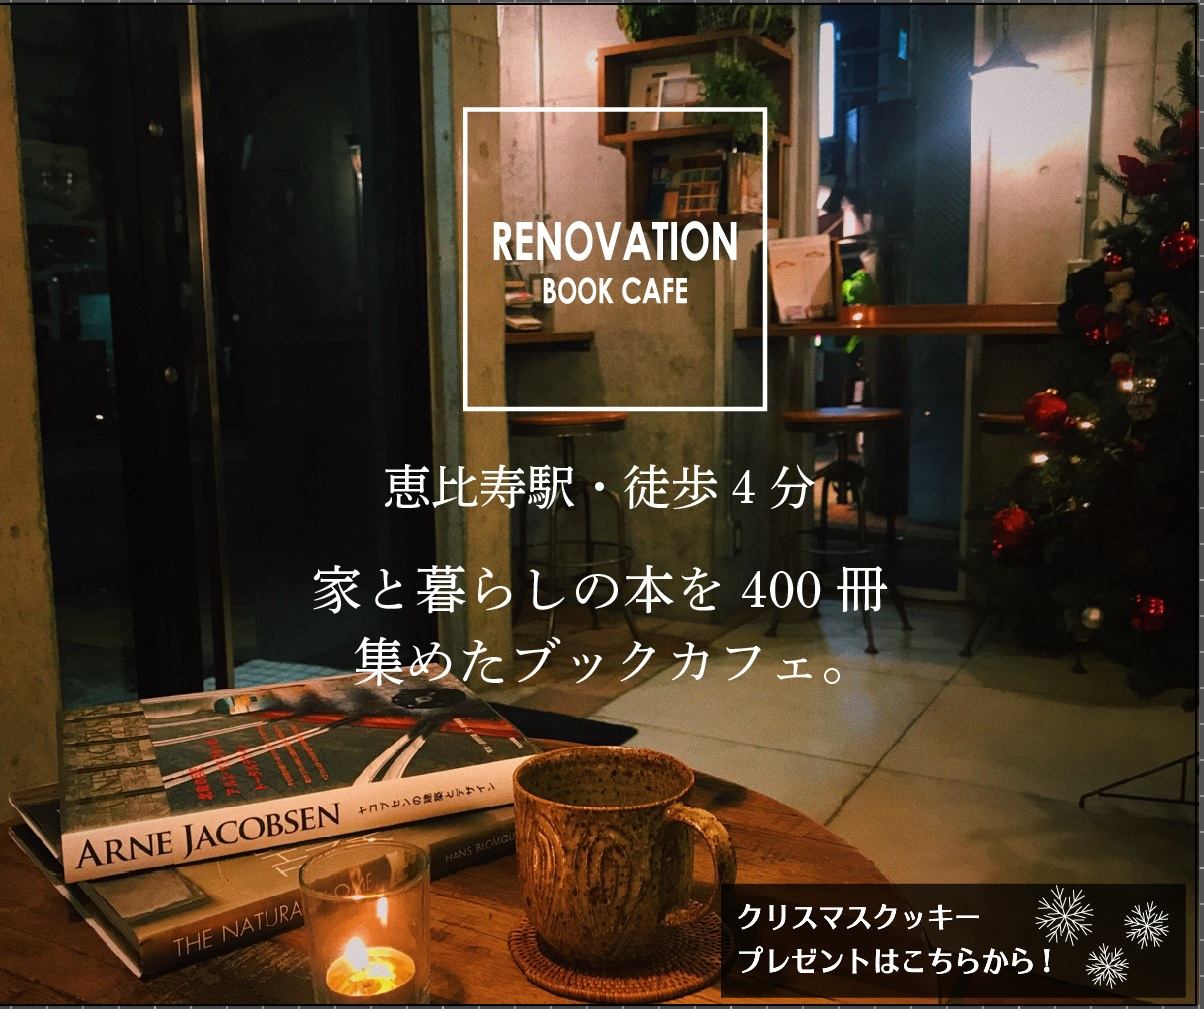 RENOVATION BOOK CAFE プレゼント